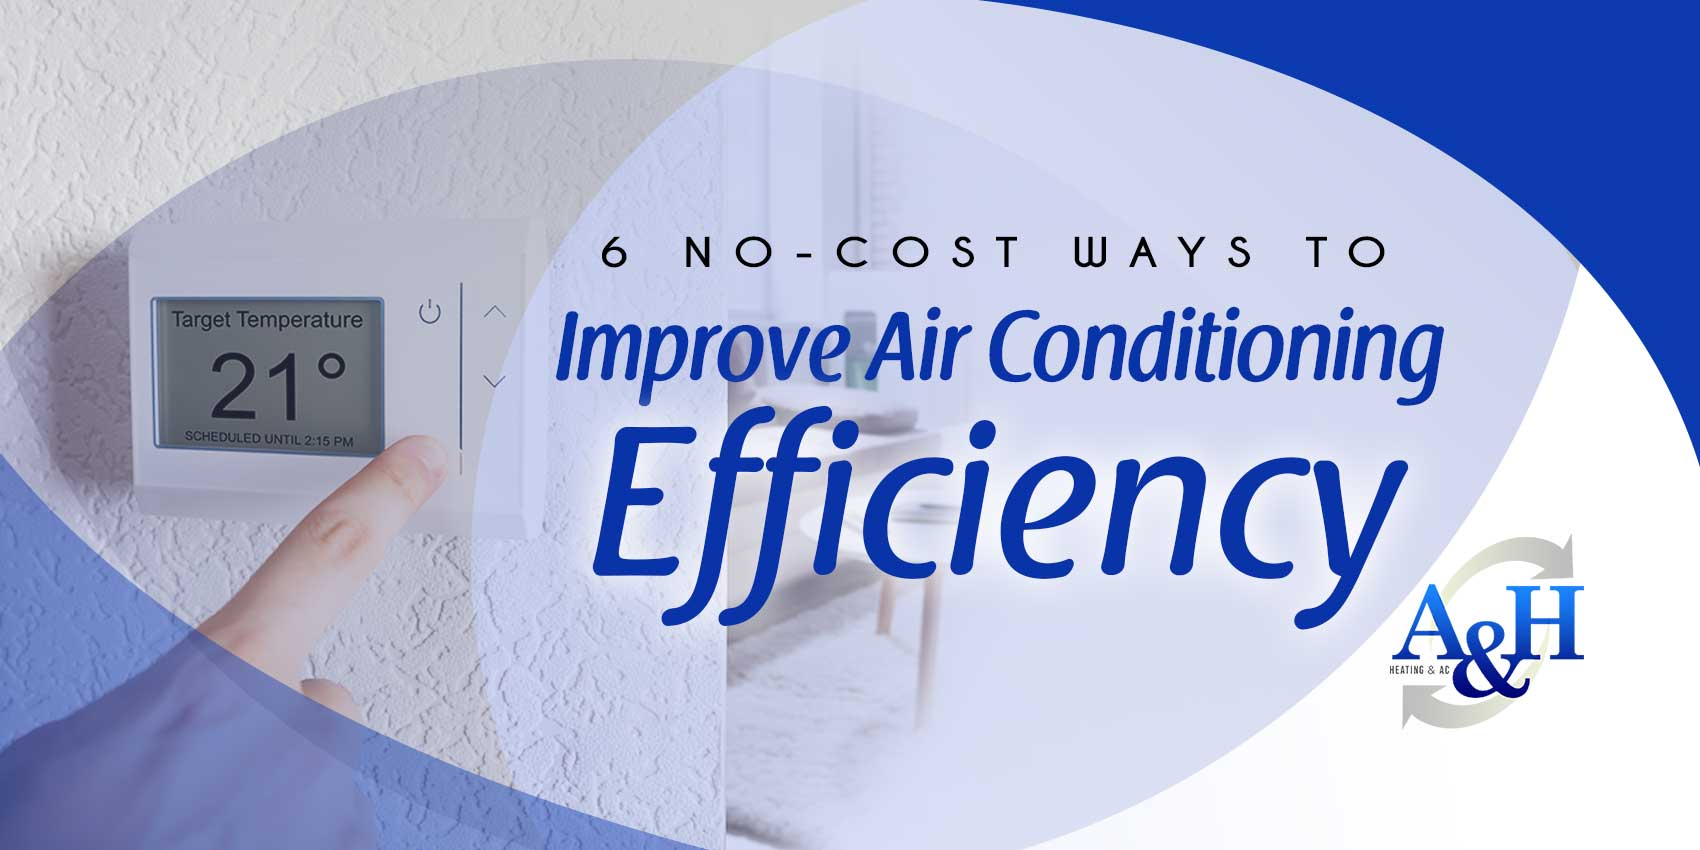 6 No-Cost Ways to Improve Air Conditioning Efficiency